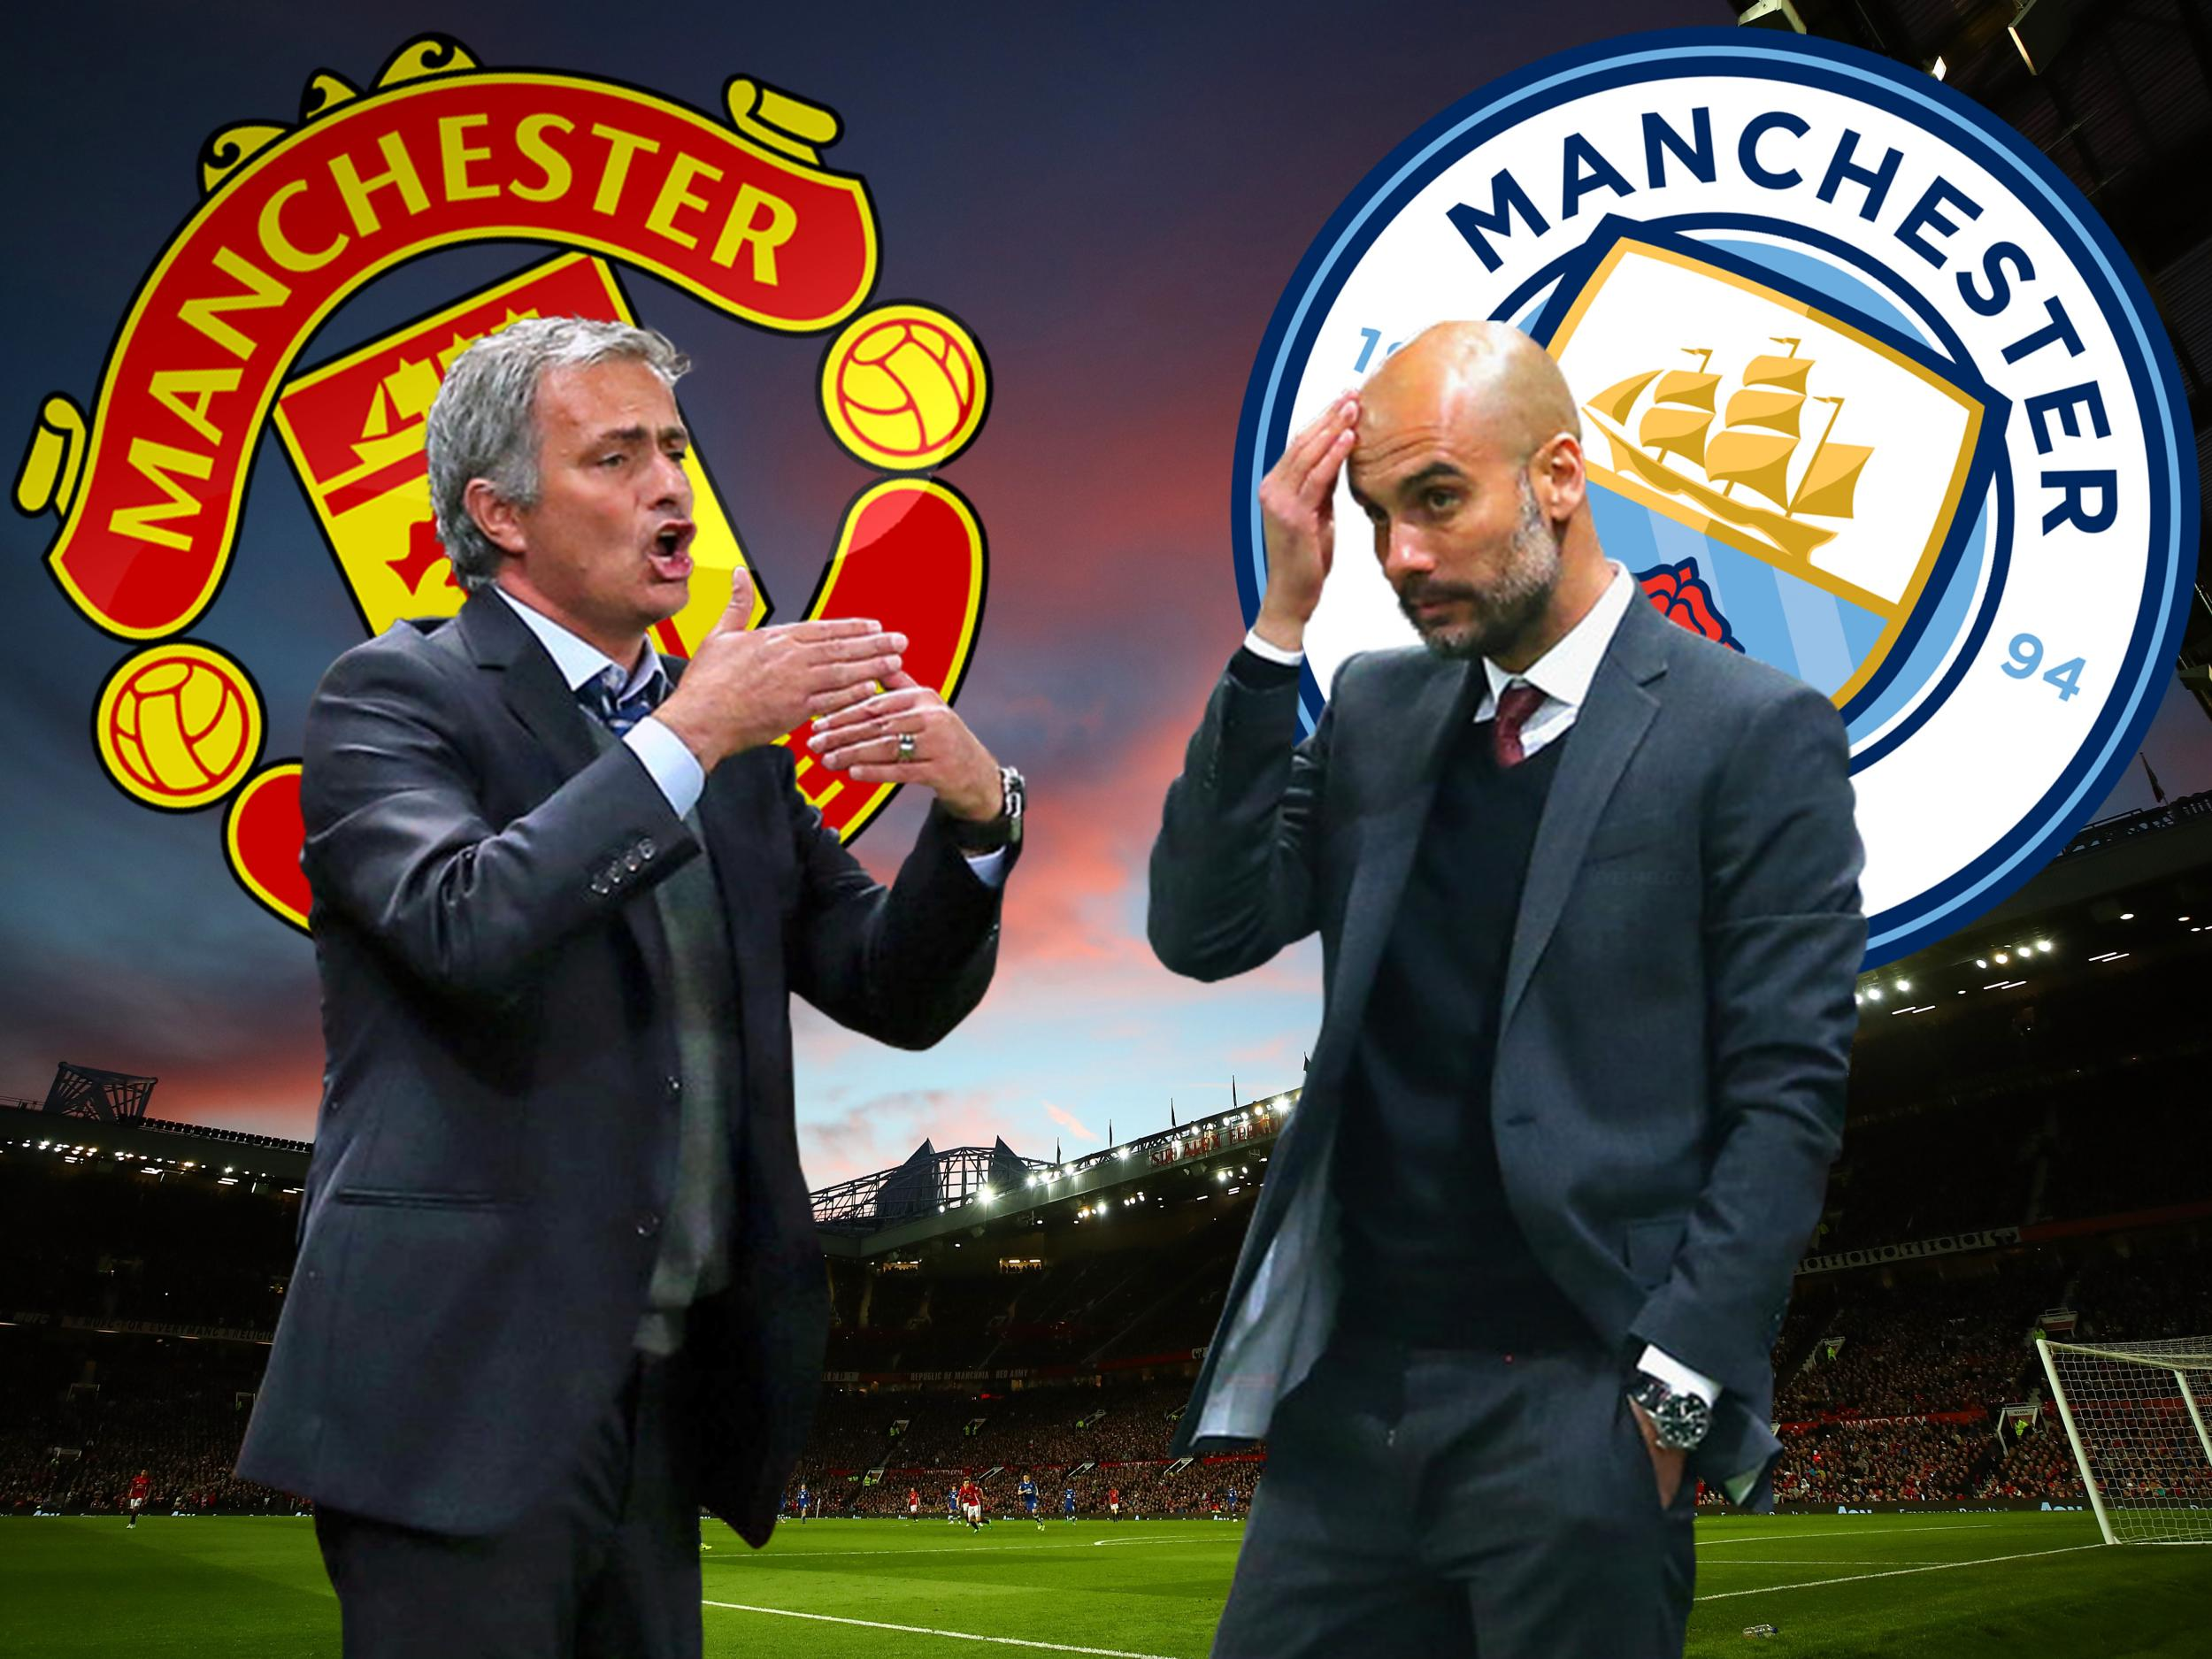 bat ngo voi ty le cuoc tran derby manchester hinh anh 2